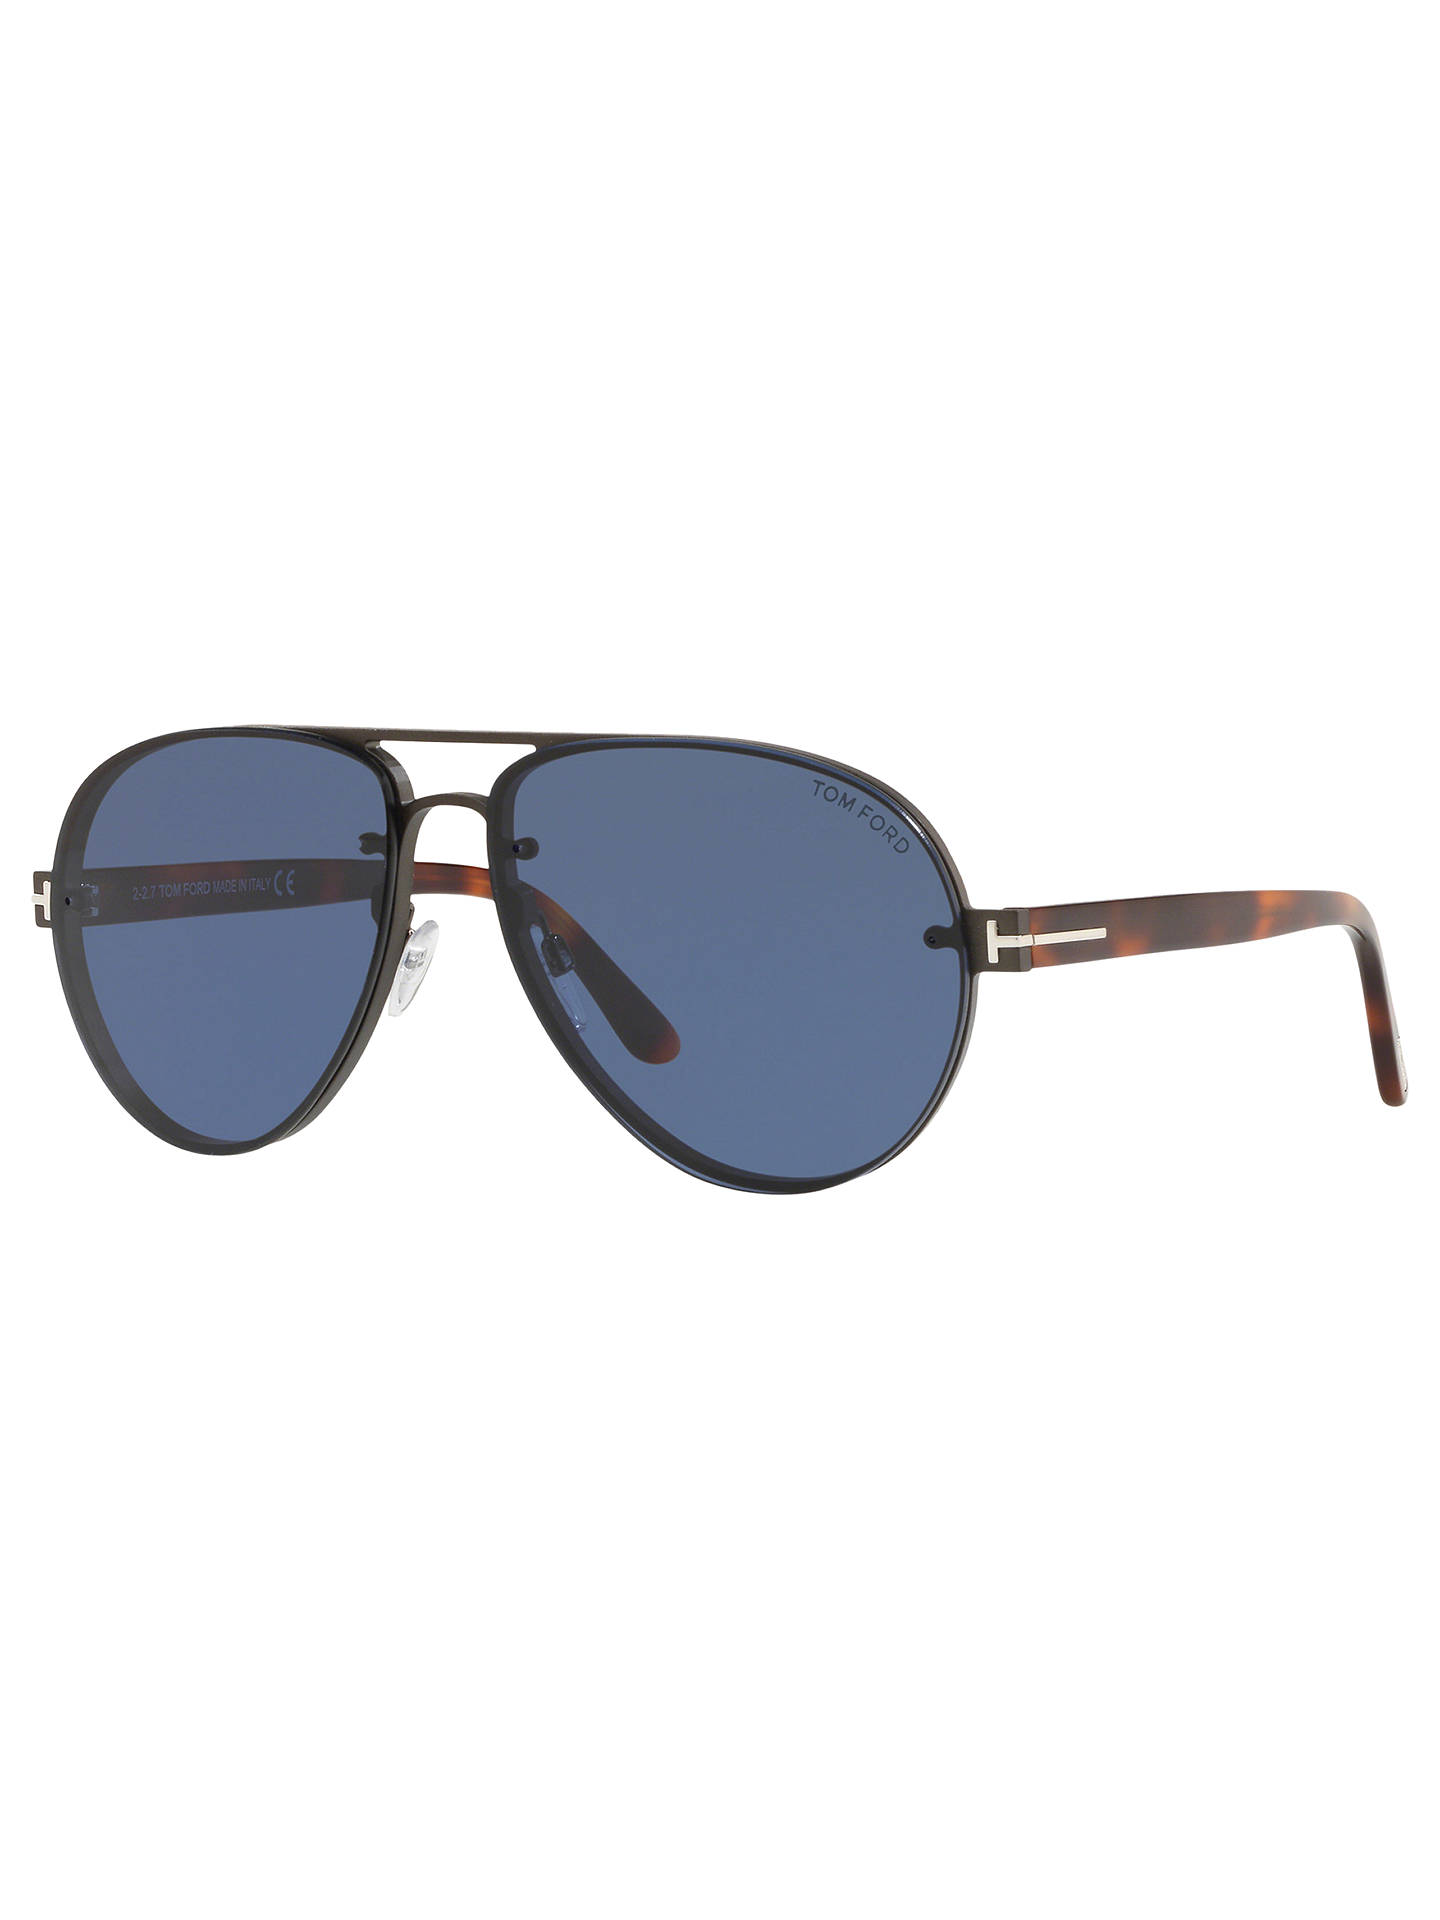 e512eeb697b71 TOM FORD FT0622 Men s Alexei-02 Aviator Sunglasses at John Lewis ...